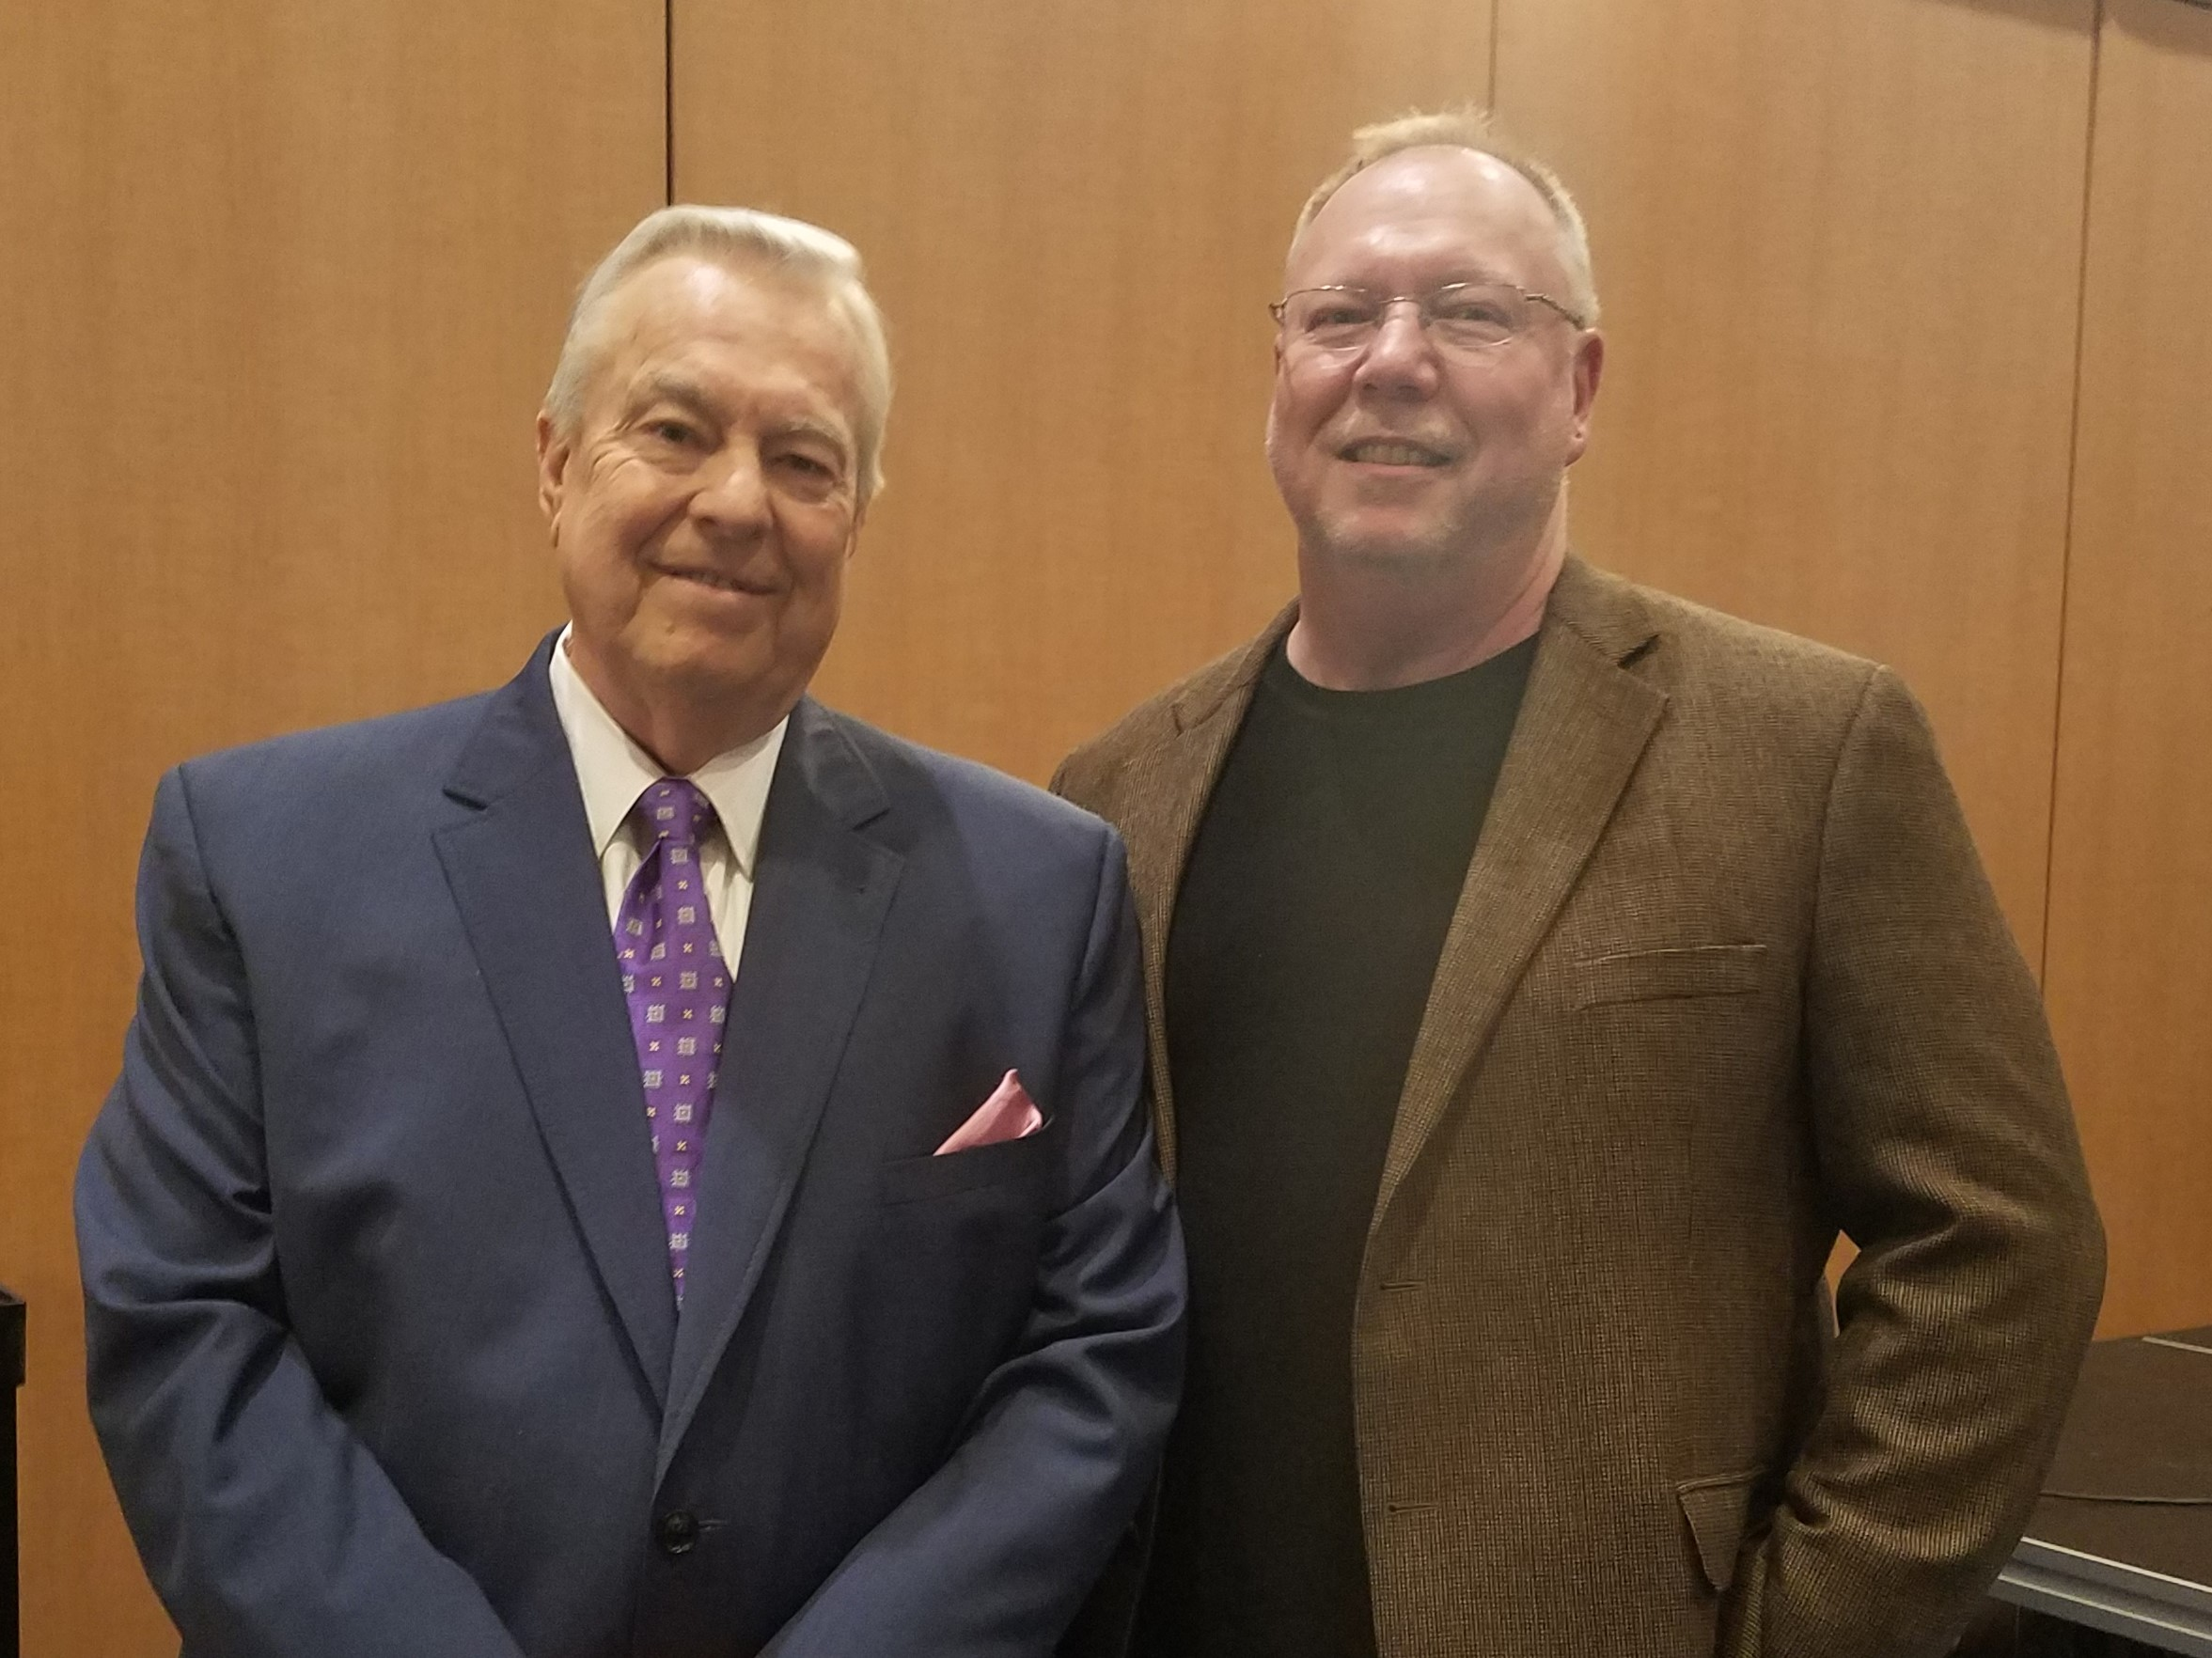 Bill Kurtis (left) and John St. Augustine have shared their passion for conservation for 27 years.